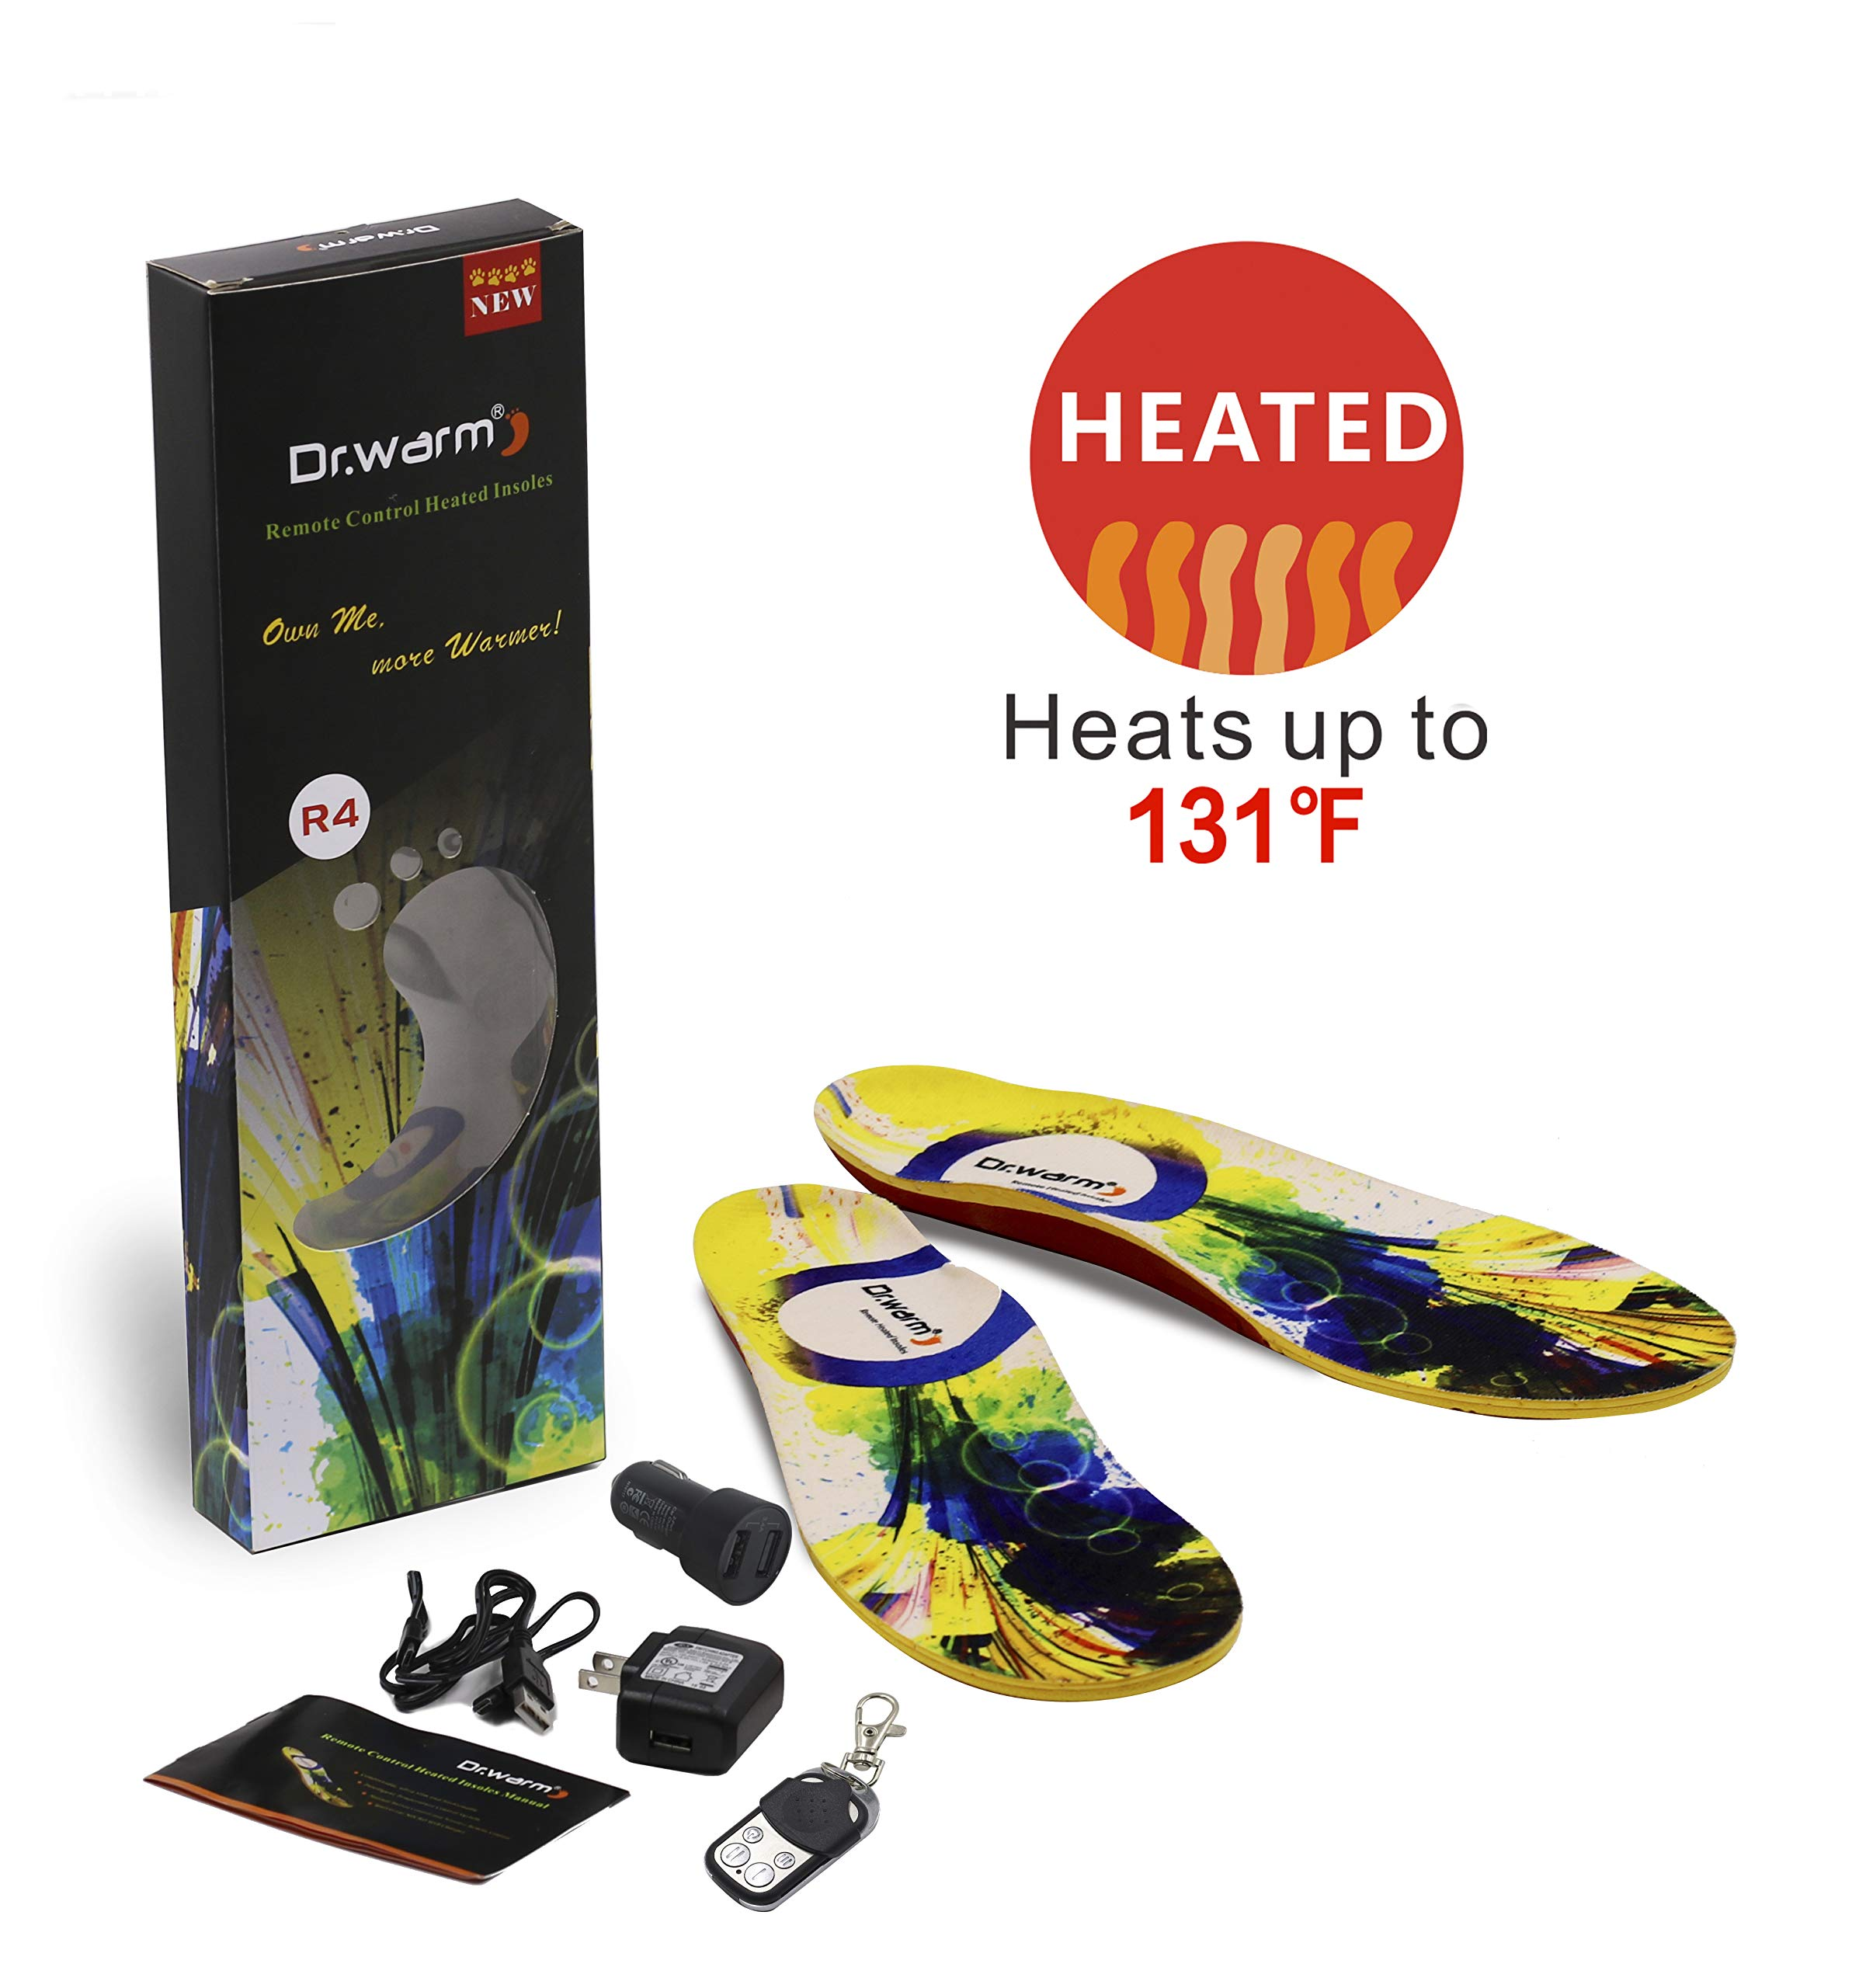 Dr.warm Heated Insoles Rechargeable Battery Heated Insoles with Car Charger Wireless Remote Control Foot Warmer for Hunting Fishing Hiking [L] by Dr.warm